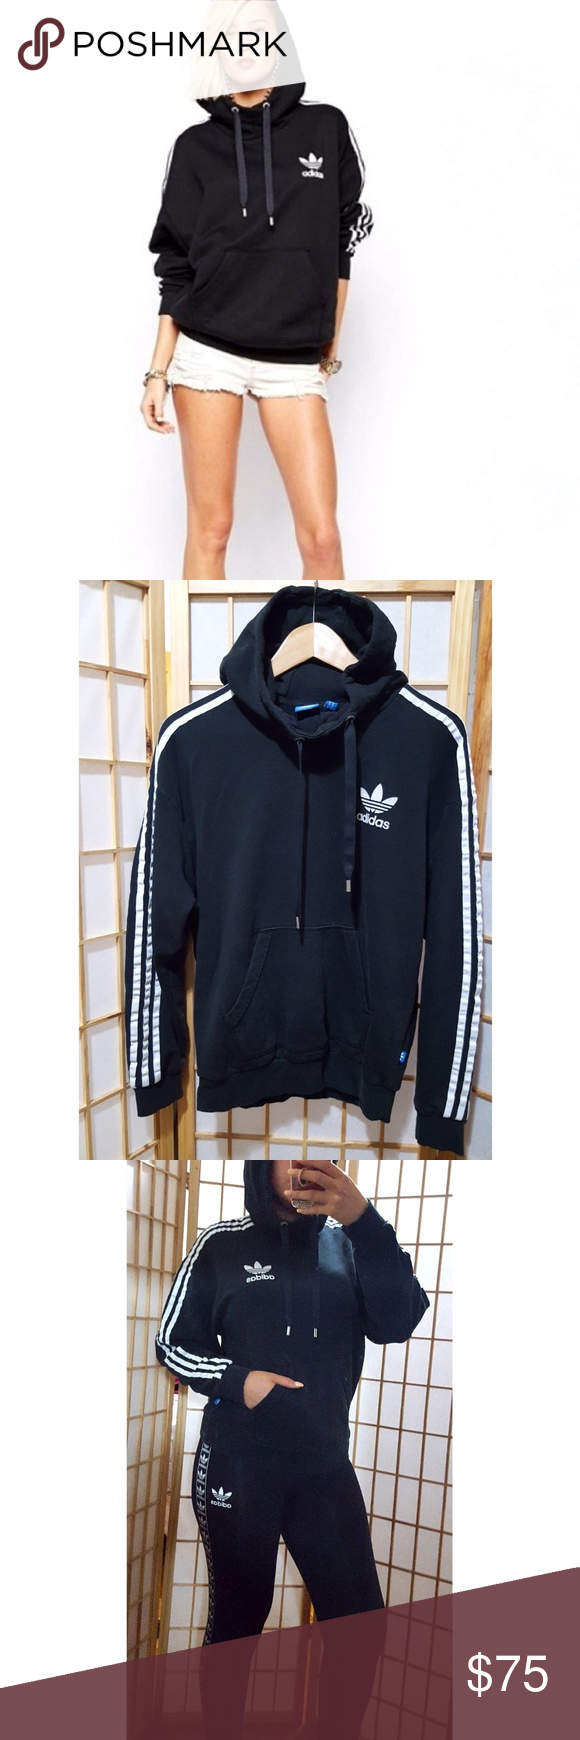 Rare Cowl Neck Adidas Hoodie Top S This Hoodie Is Sold Out A Pinterest Fave It Has A Cute Feminine Fit Not Your Boy Hoodie Top Adidas Hoodie Clothes Design [ 1740 x 580 Pixel ]